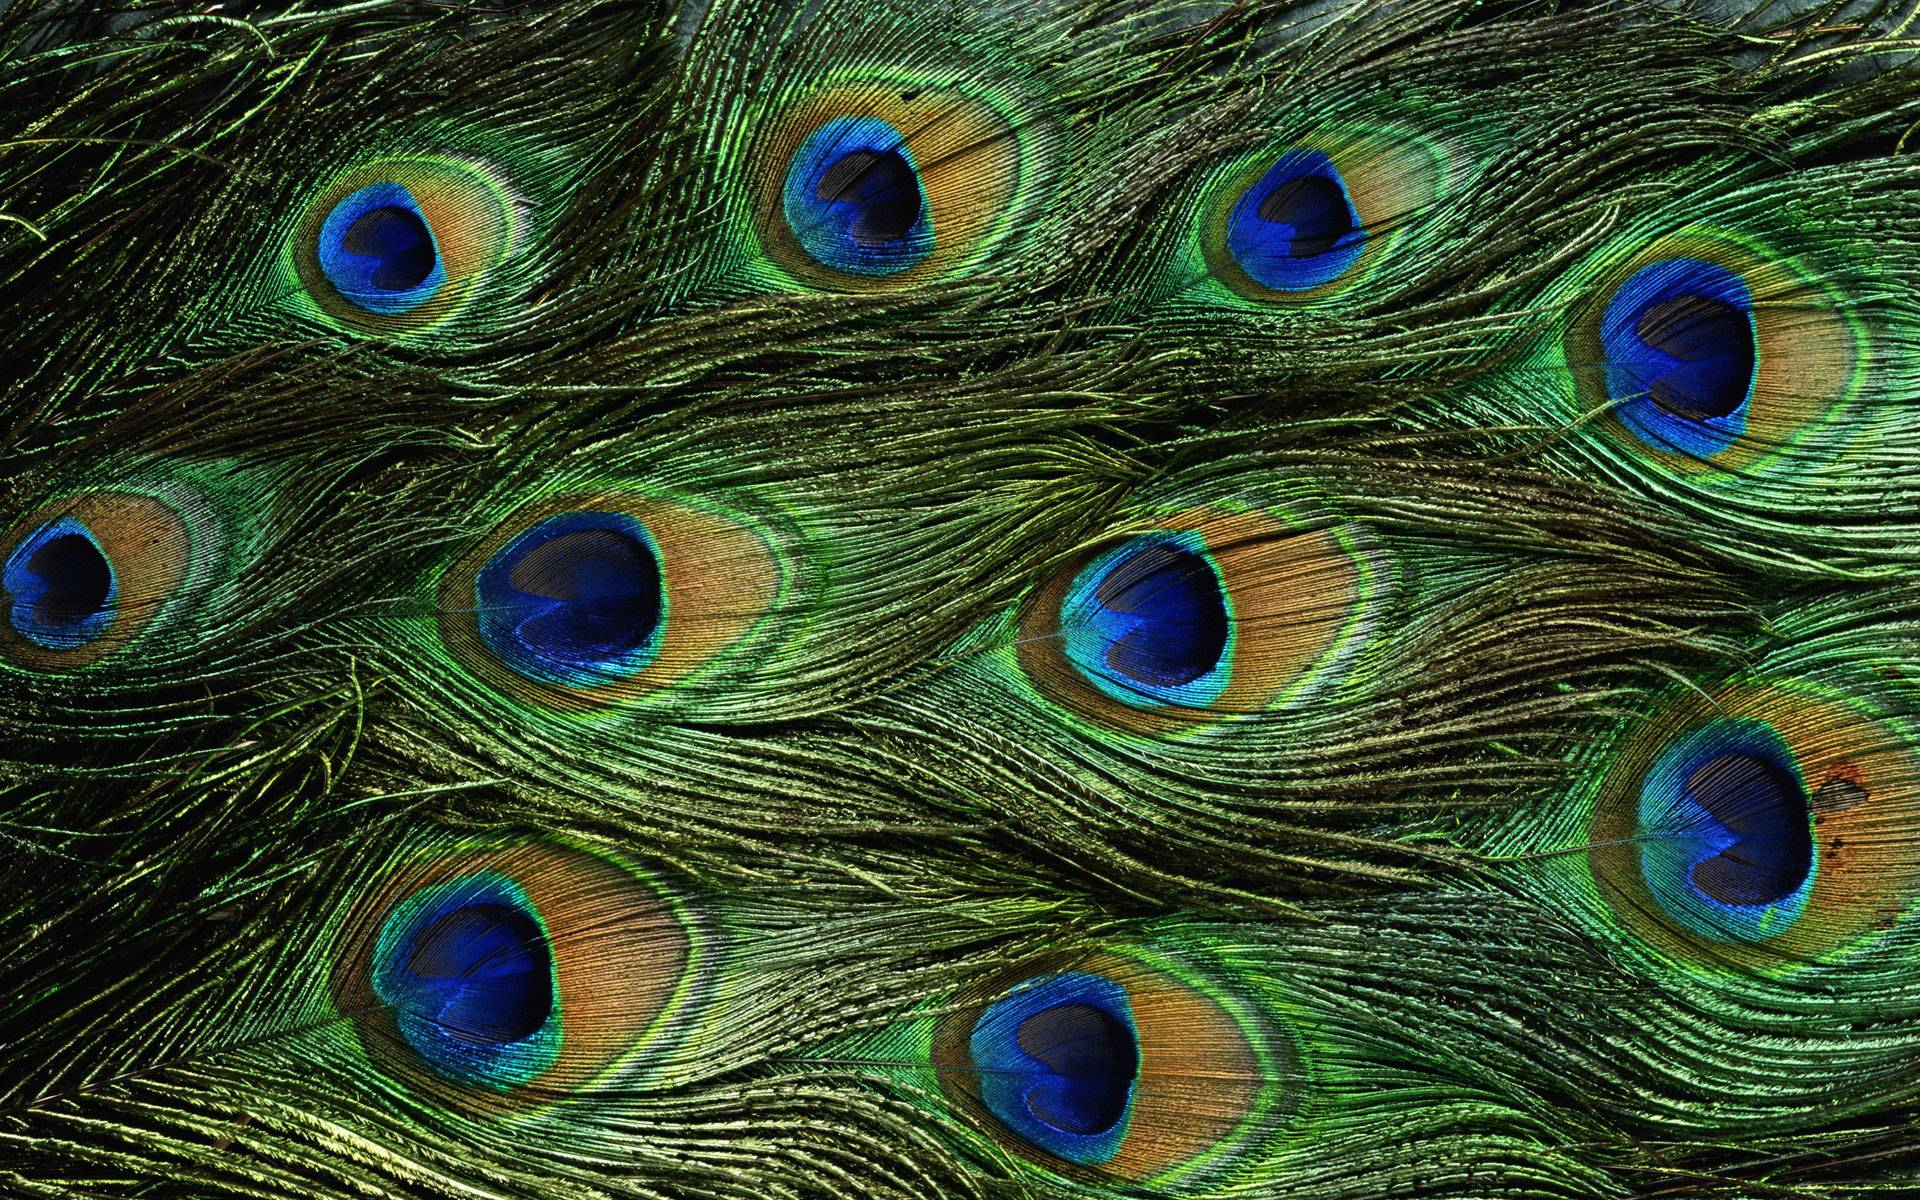 Wallpapers of peacock feathers hd 2015 wallpaper cave for Peacock feather template